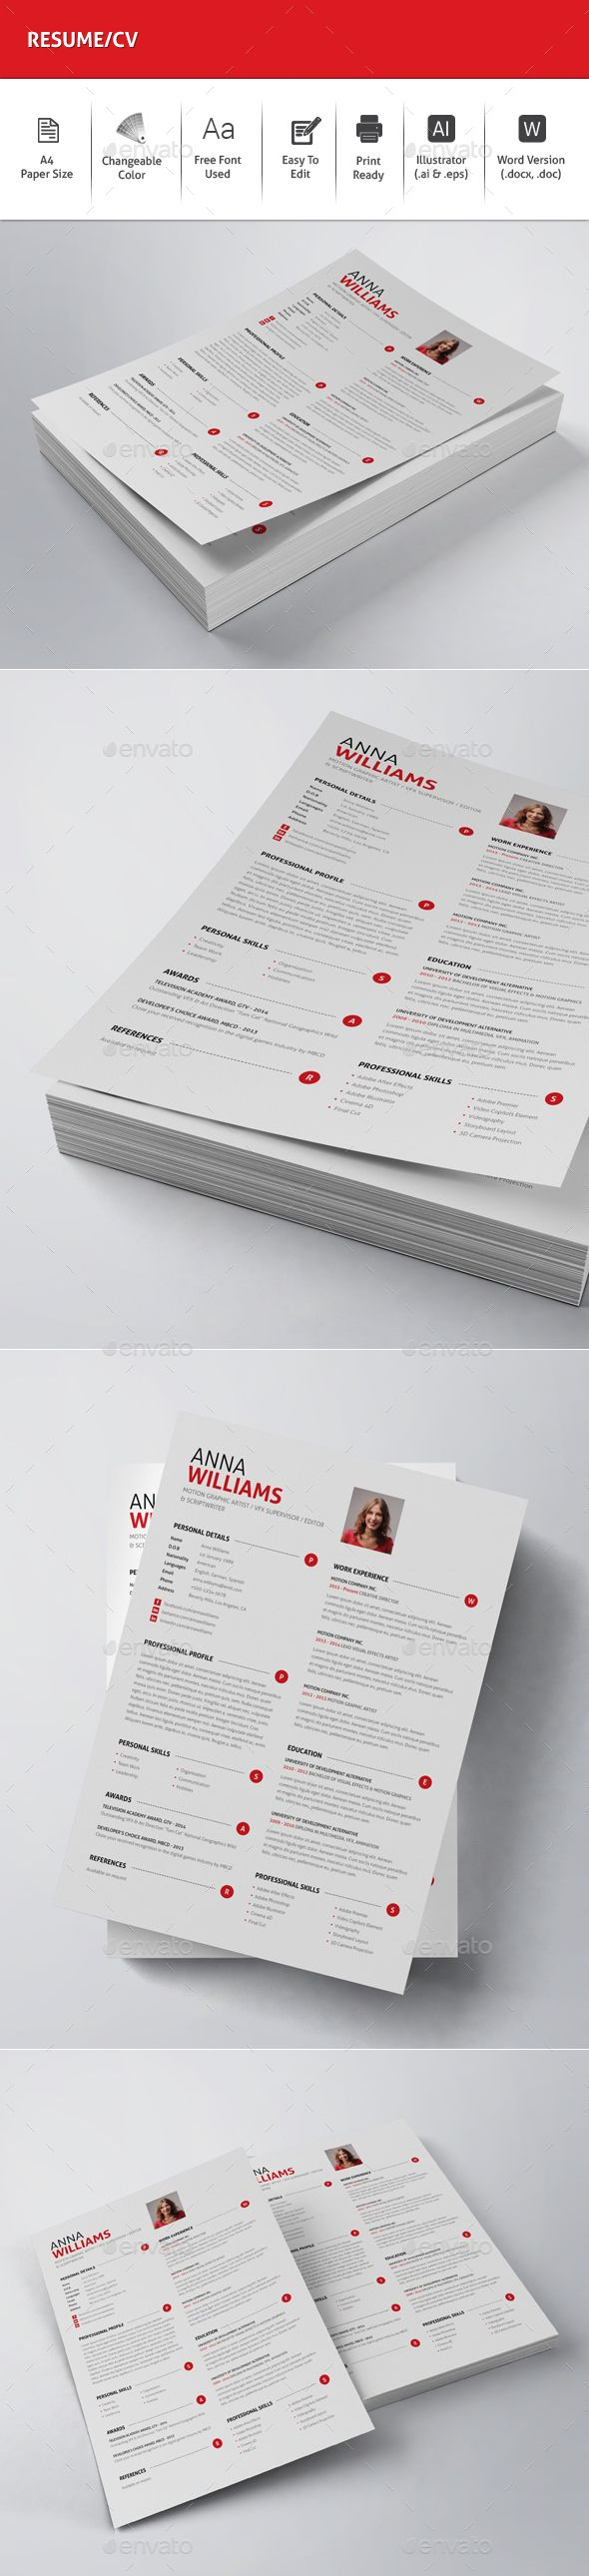 best images about web design creative resume cv 17 best images about web design creative resume cv design and cv template